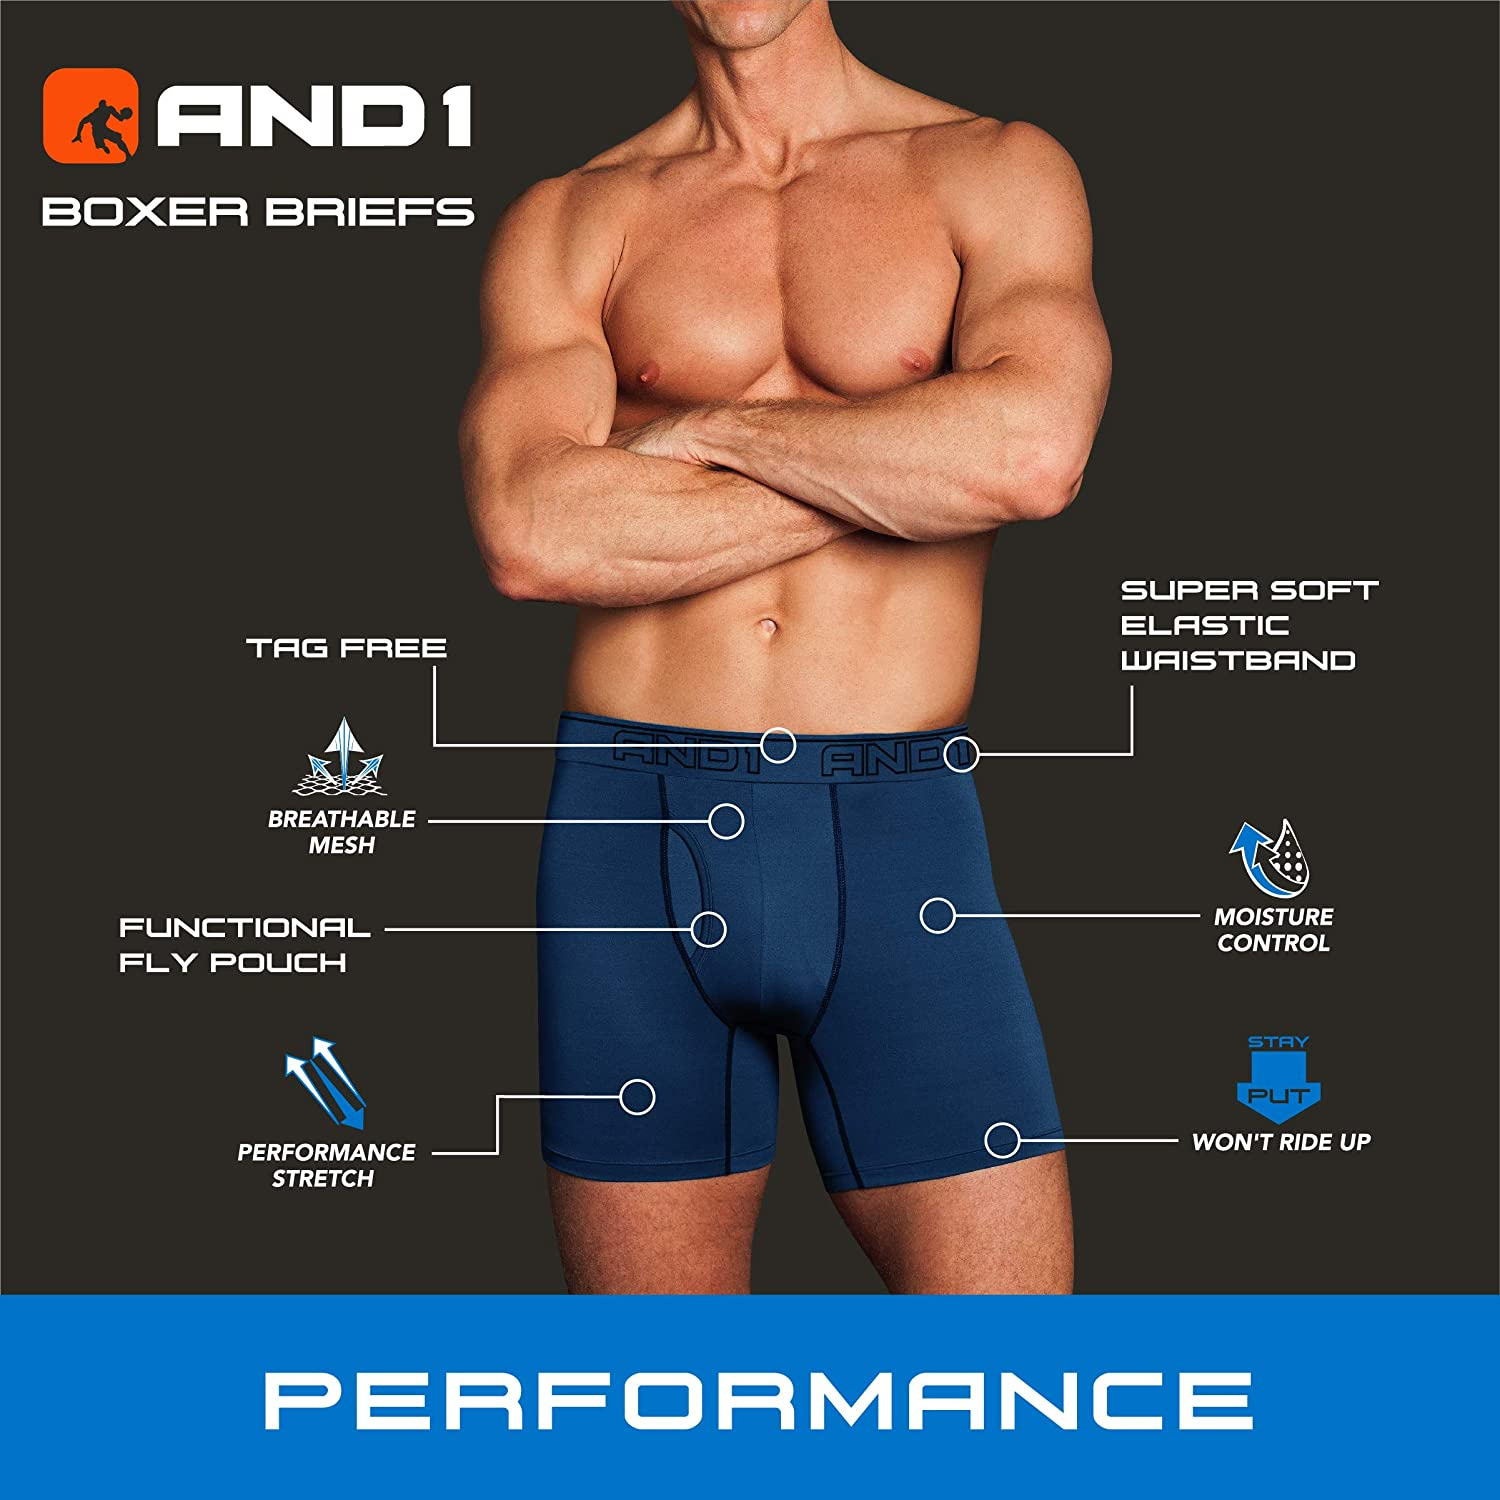 AND1 Men's Underwear - Performance Compression Boxer Briefs with Functional Fly (10 Pack)